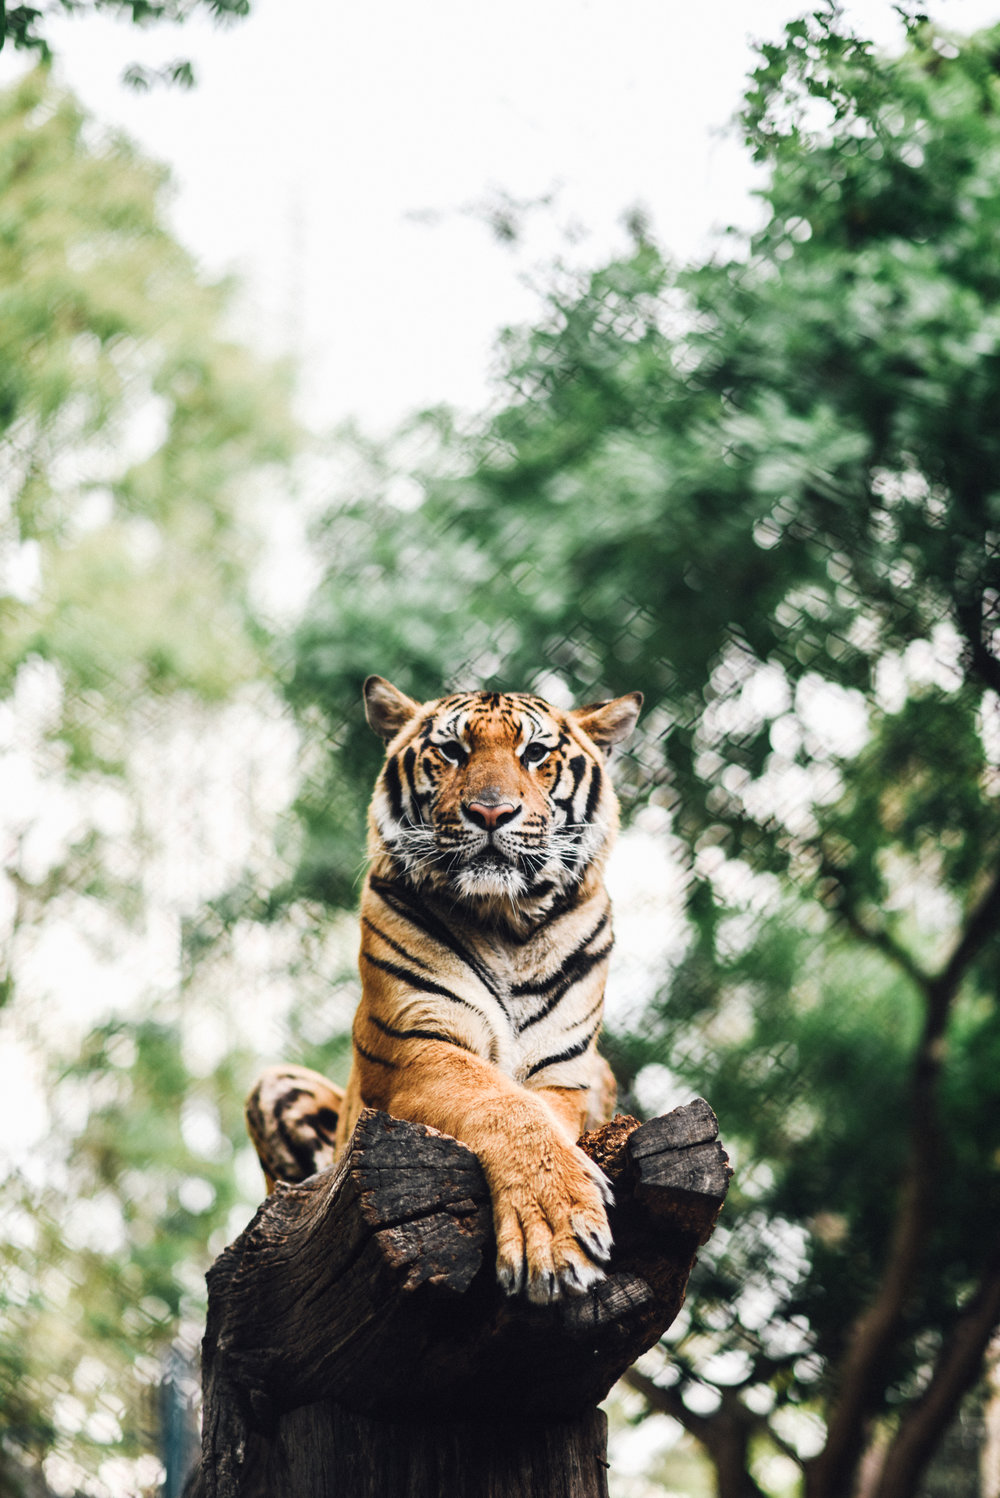 tiger-kingdom-thailand-2.jpg